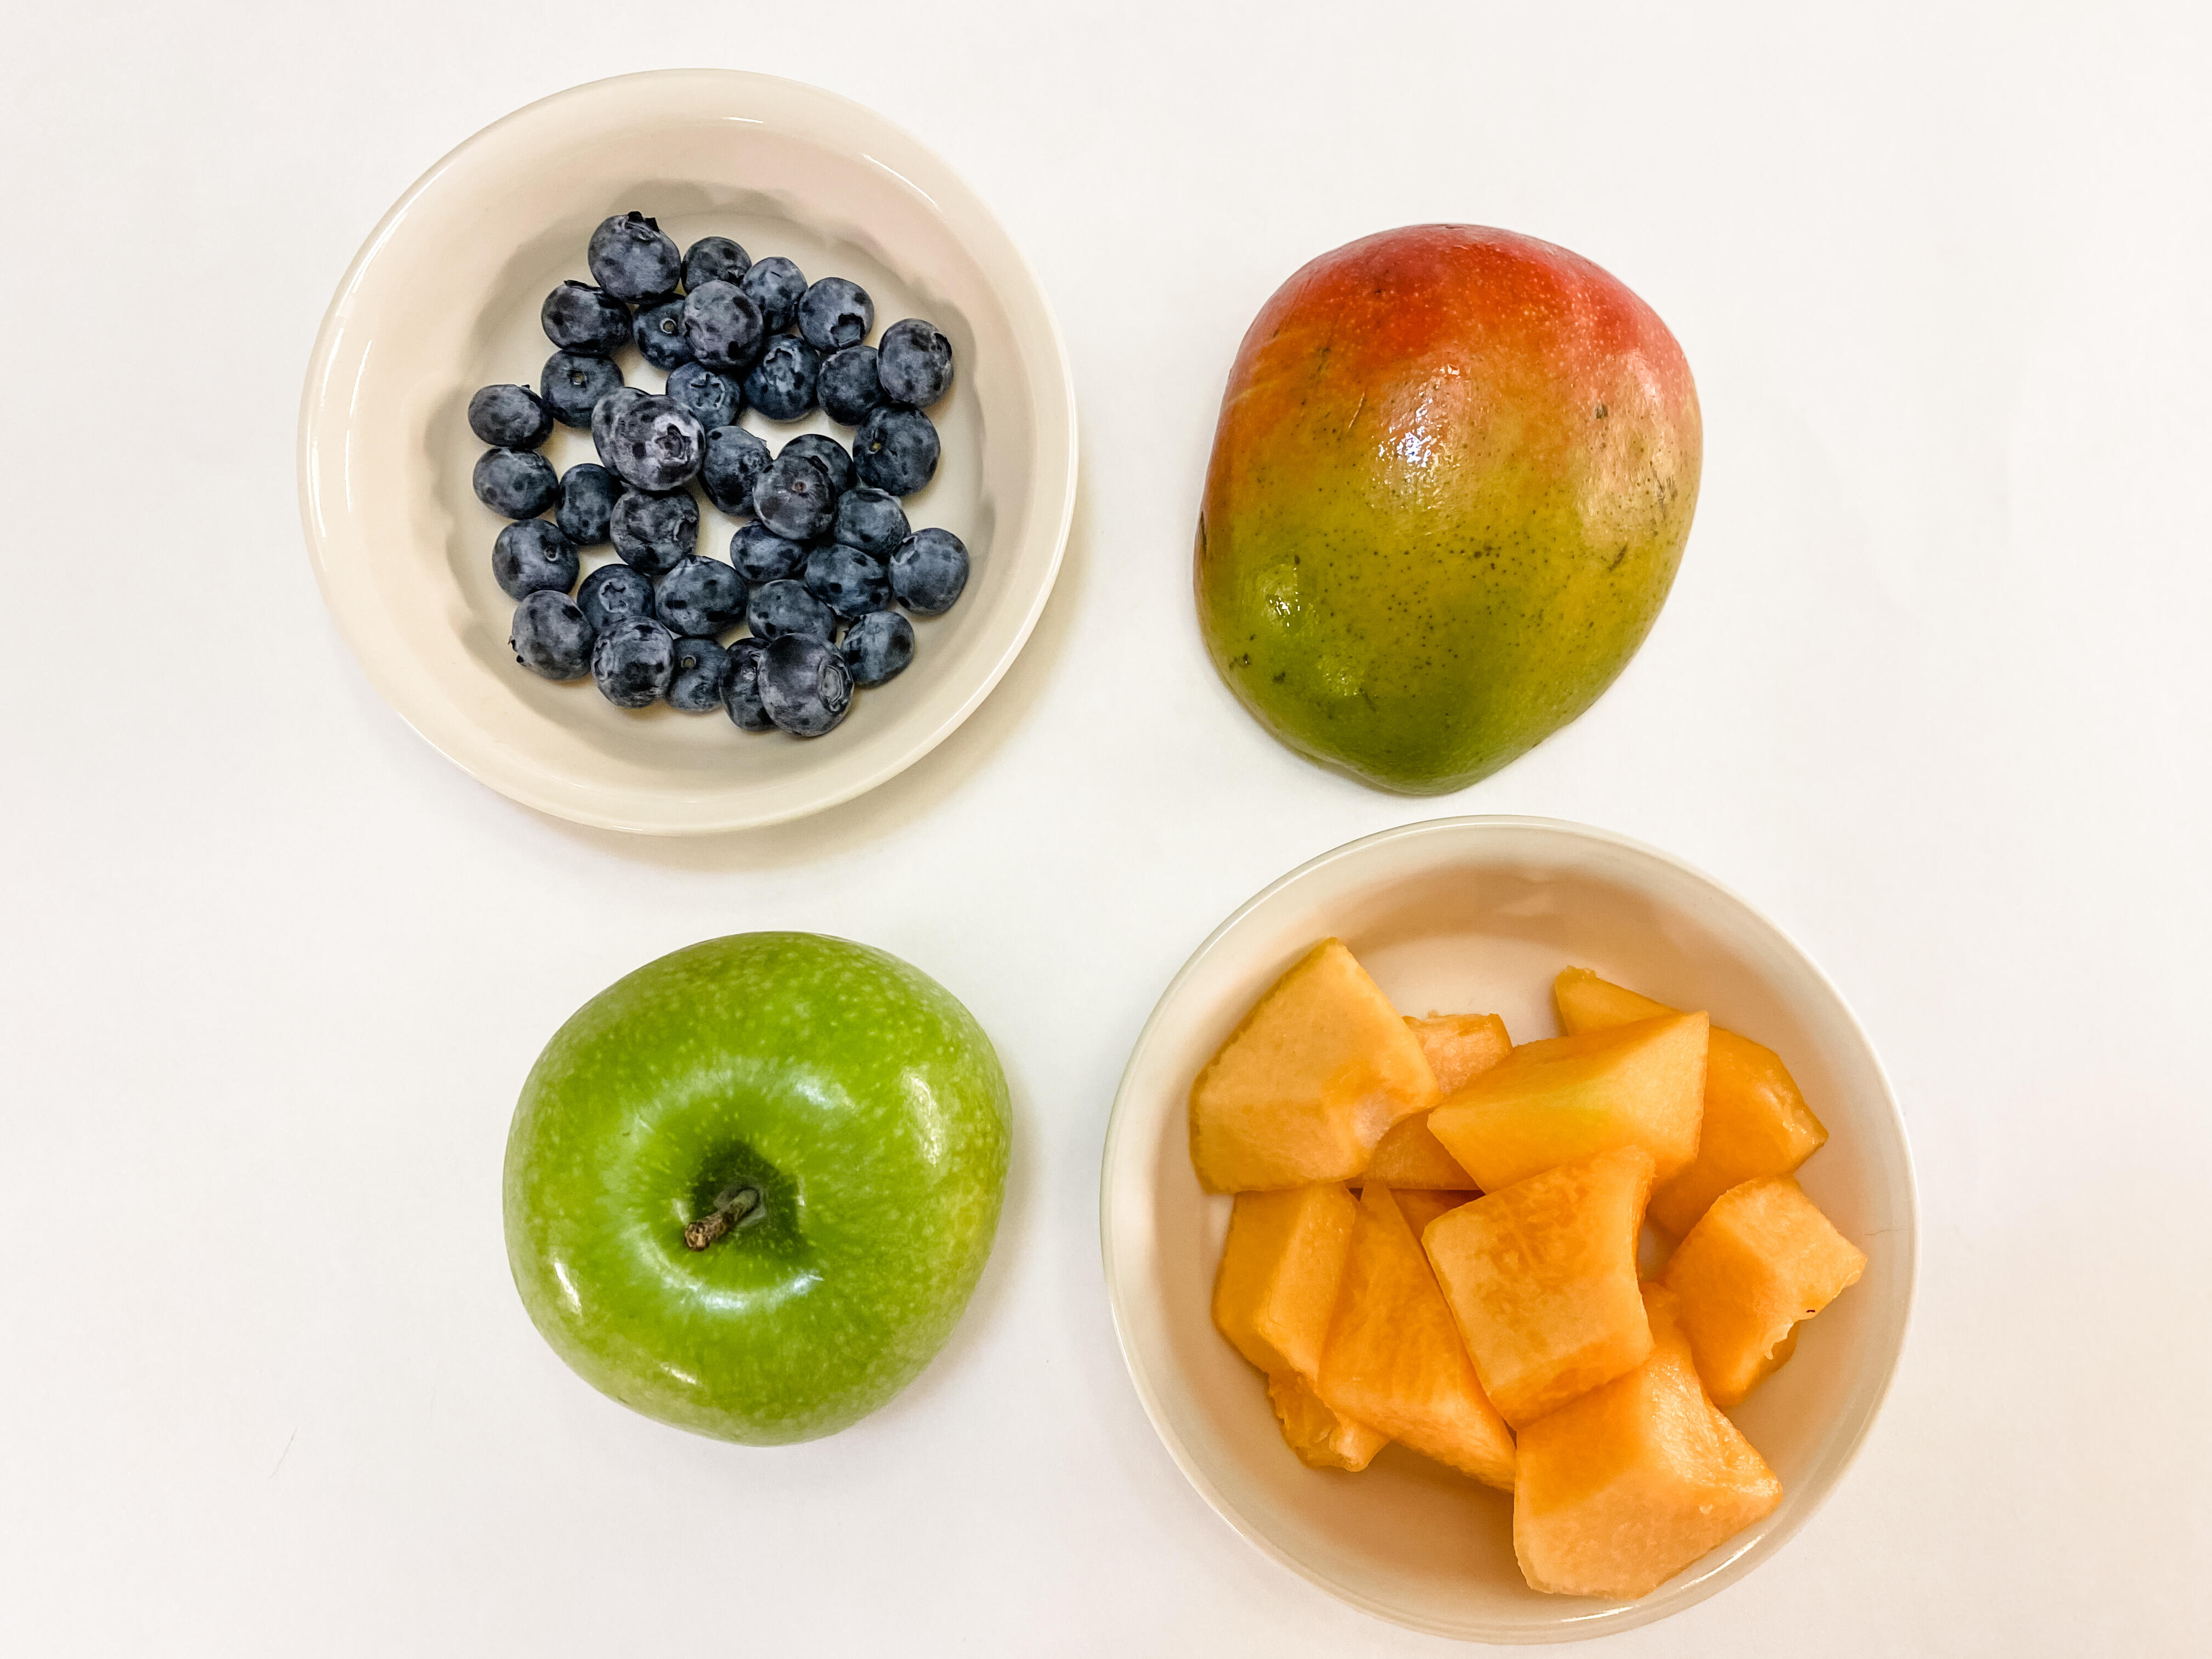 Five servings of fruit: half cup blueberries, half a mango, one apple, one cup cantaloupe